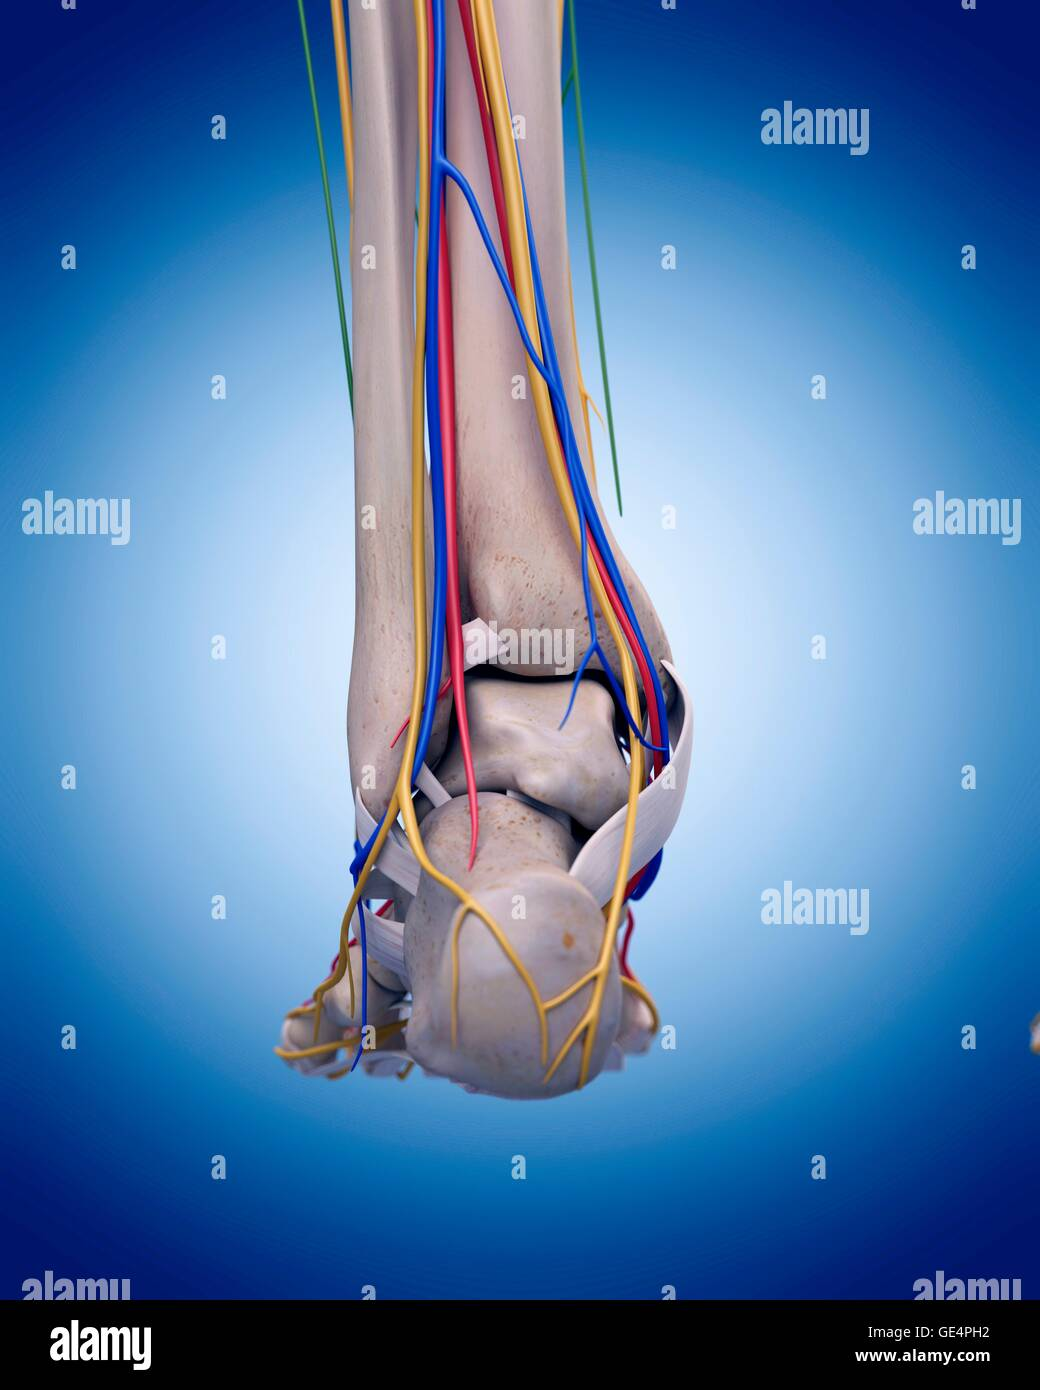 Human Heel Anatomy Stock Photos & Human Heel Anatomy Stock Images ...